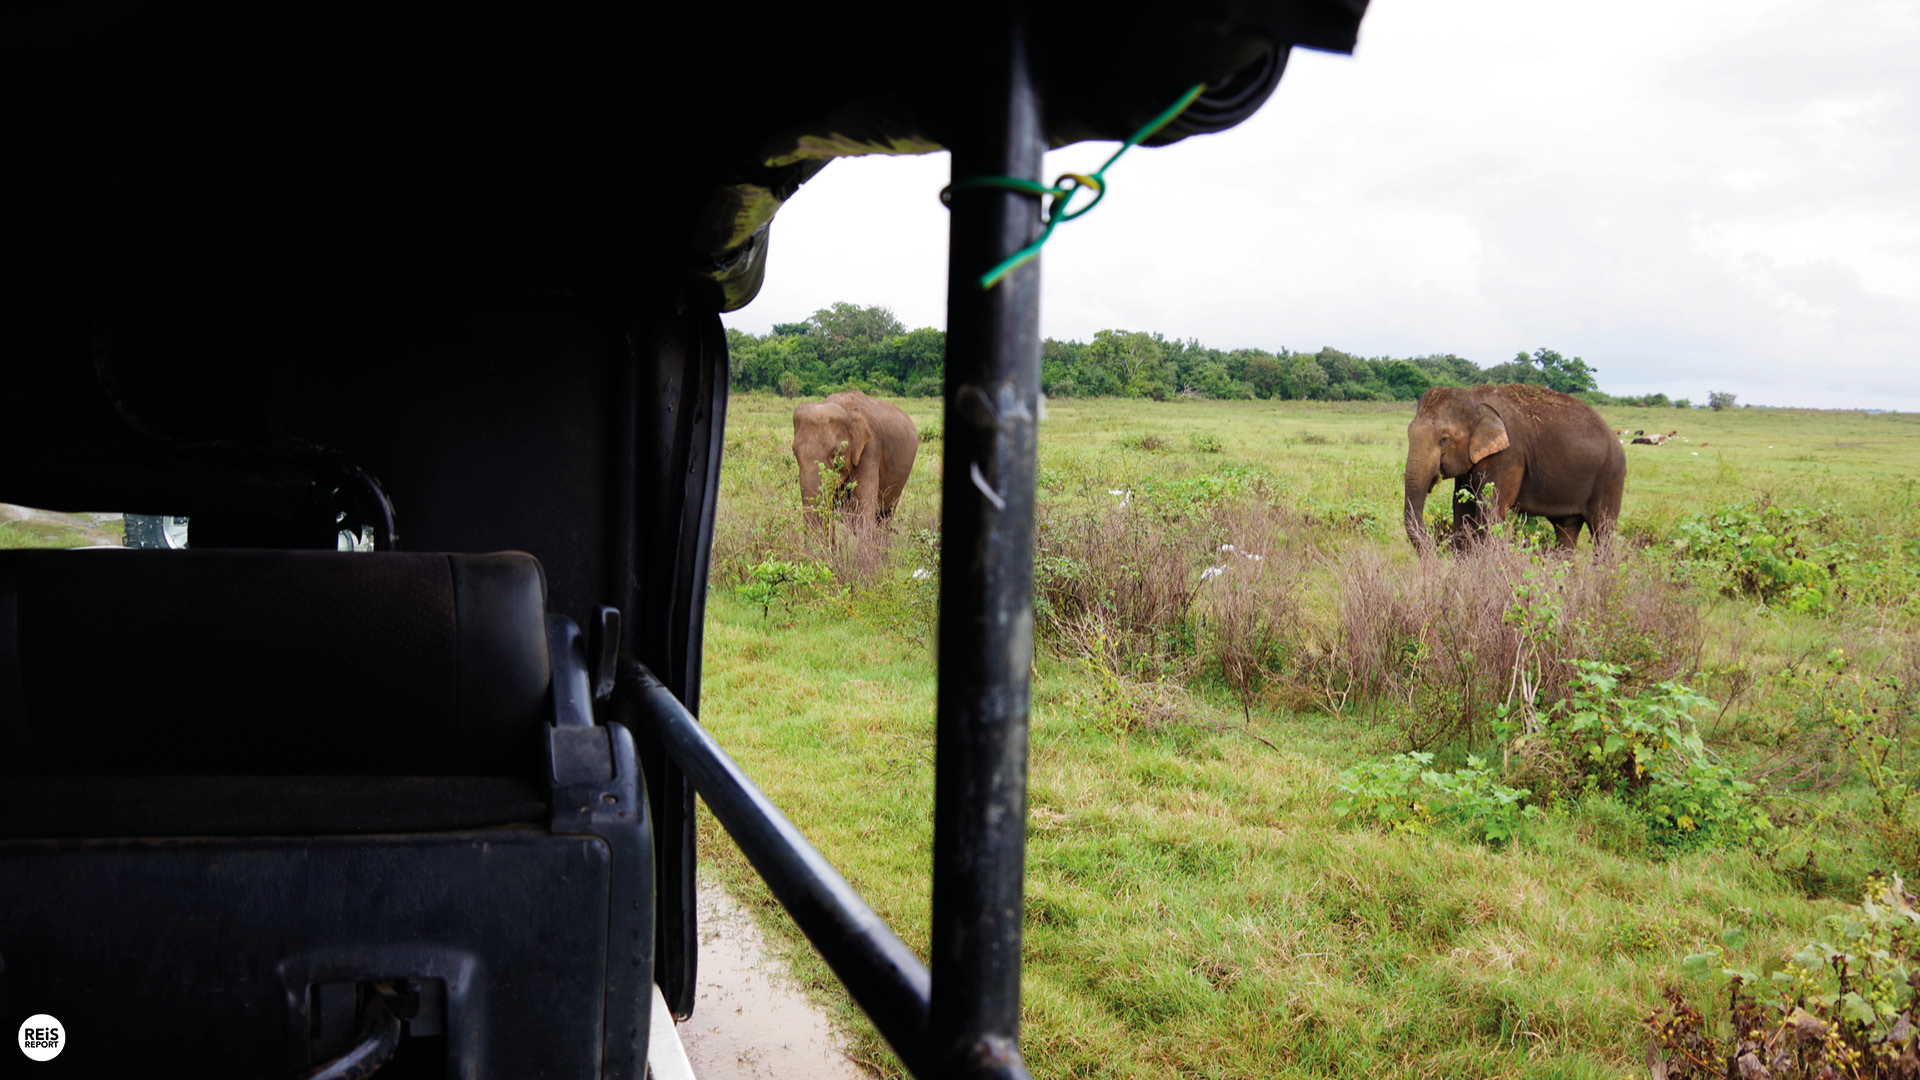 kaudulla nationaal park jeep safari sri lanka